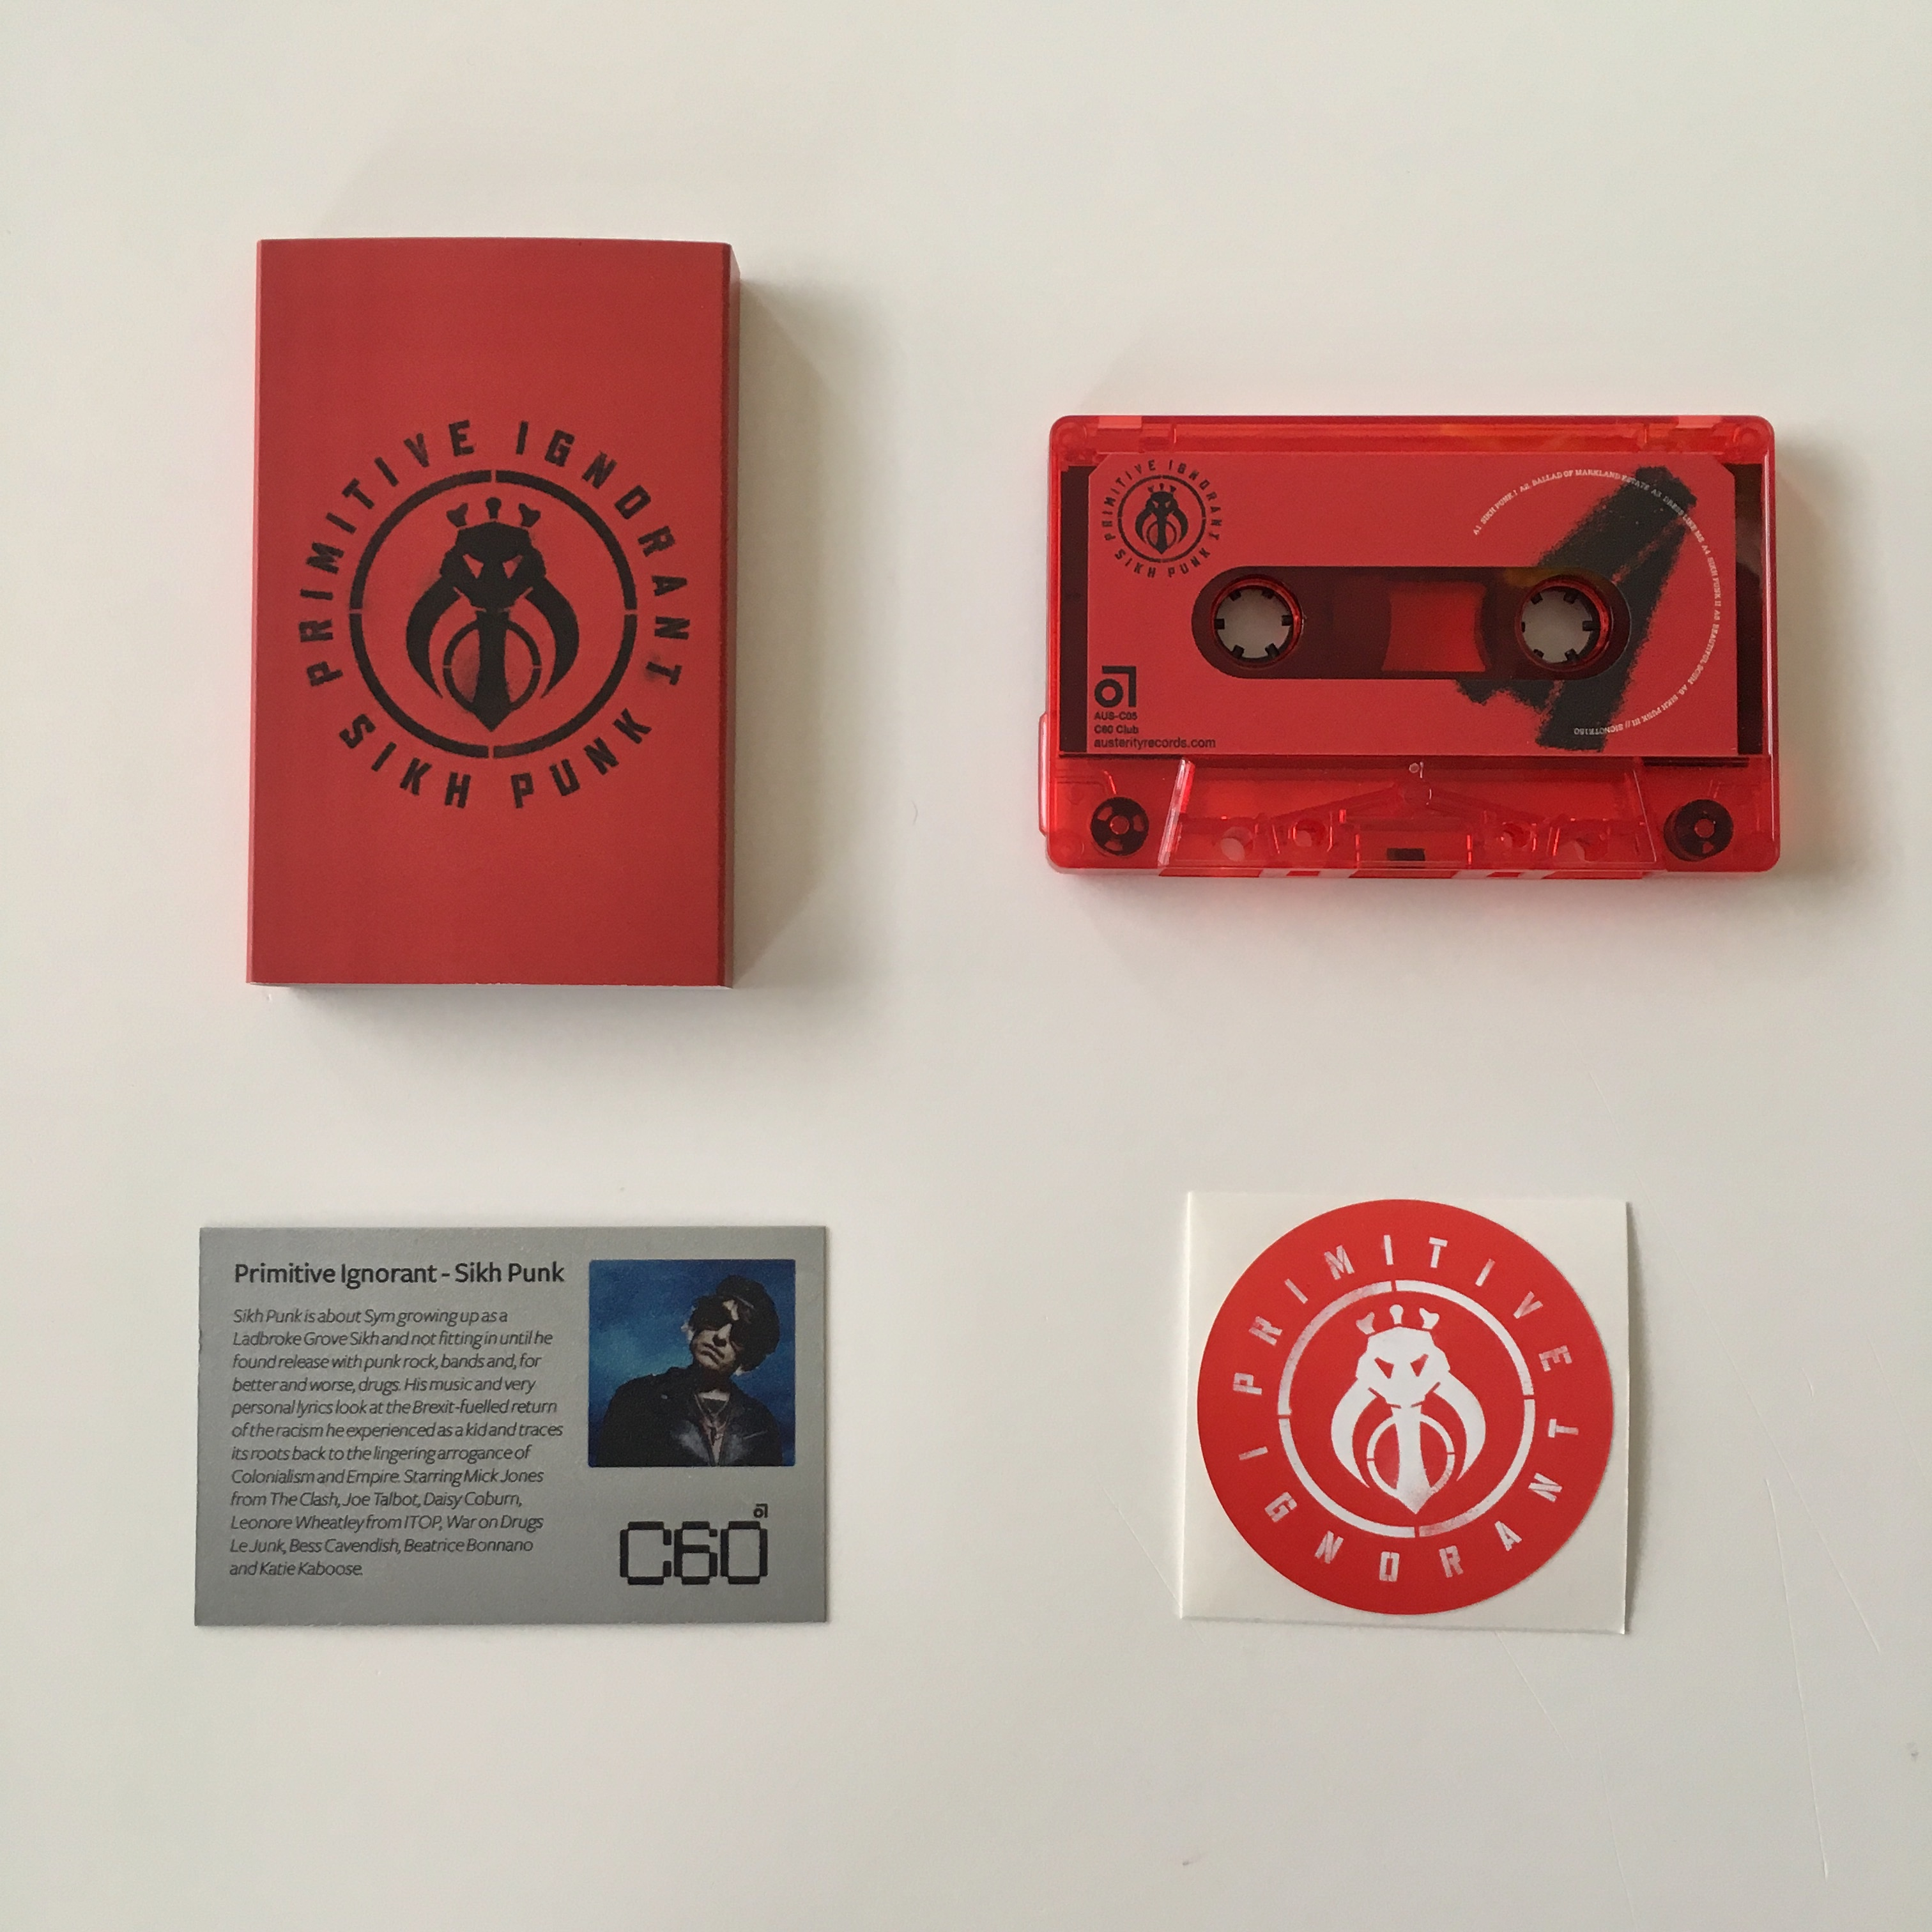 Primitive Ignorant - Sikh Punk (Very limited trans red cassette)